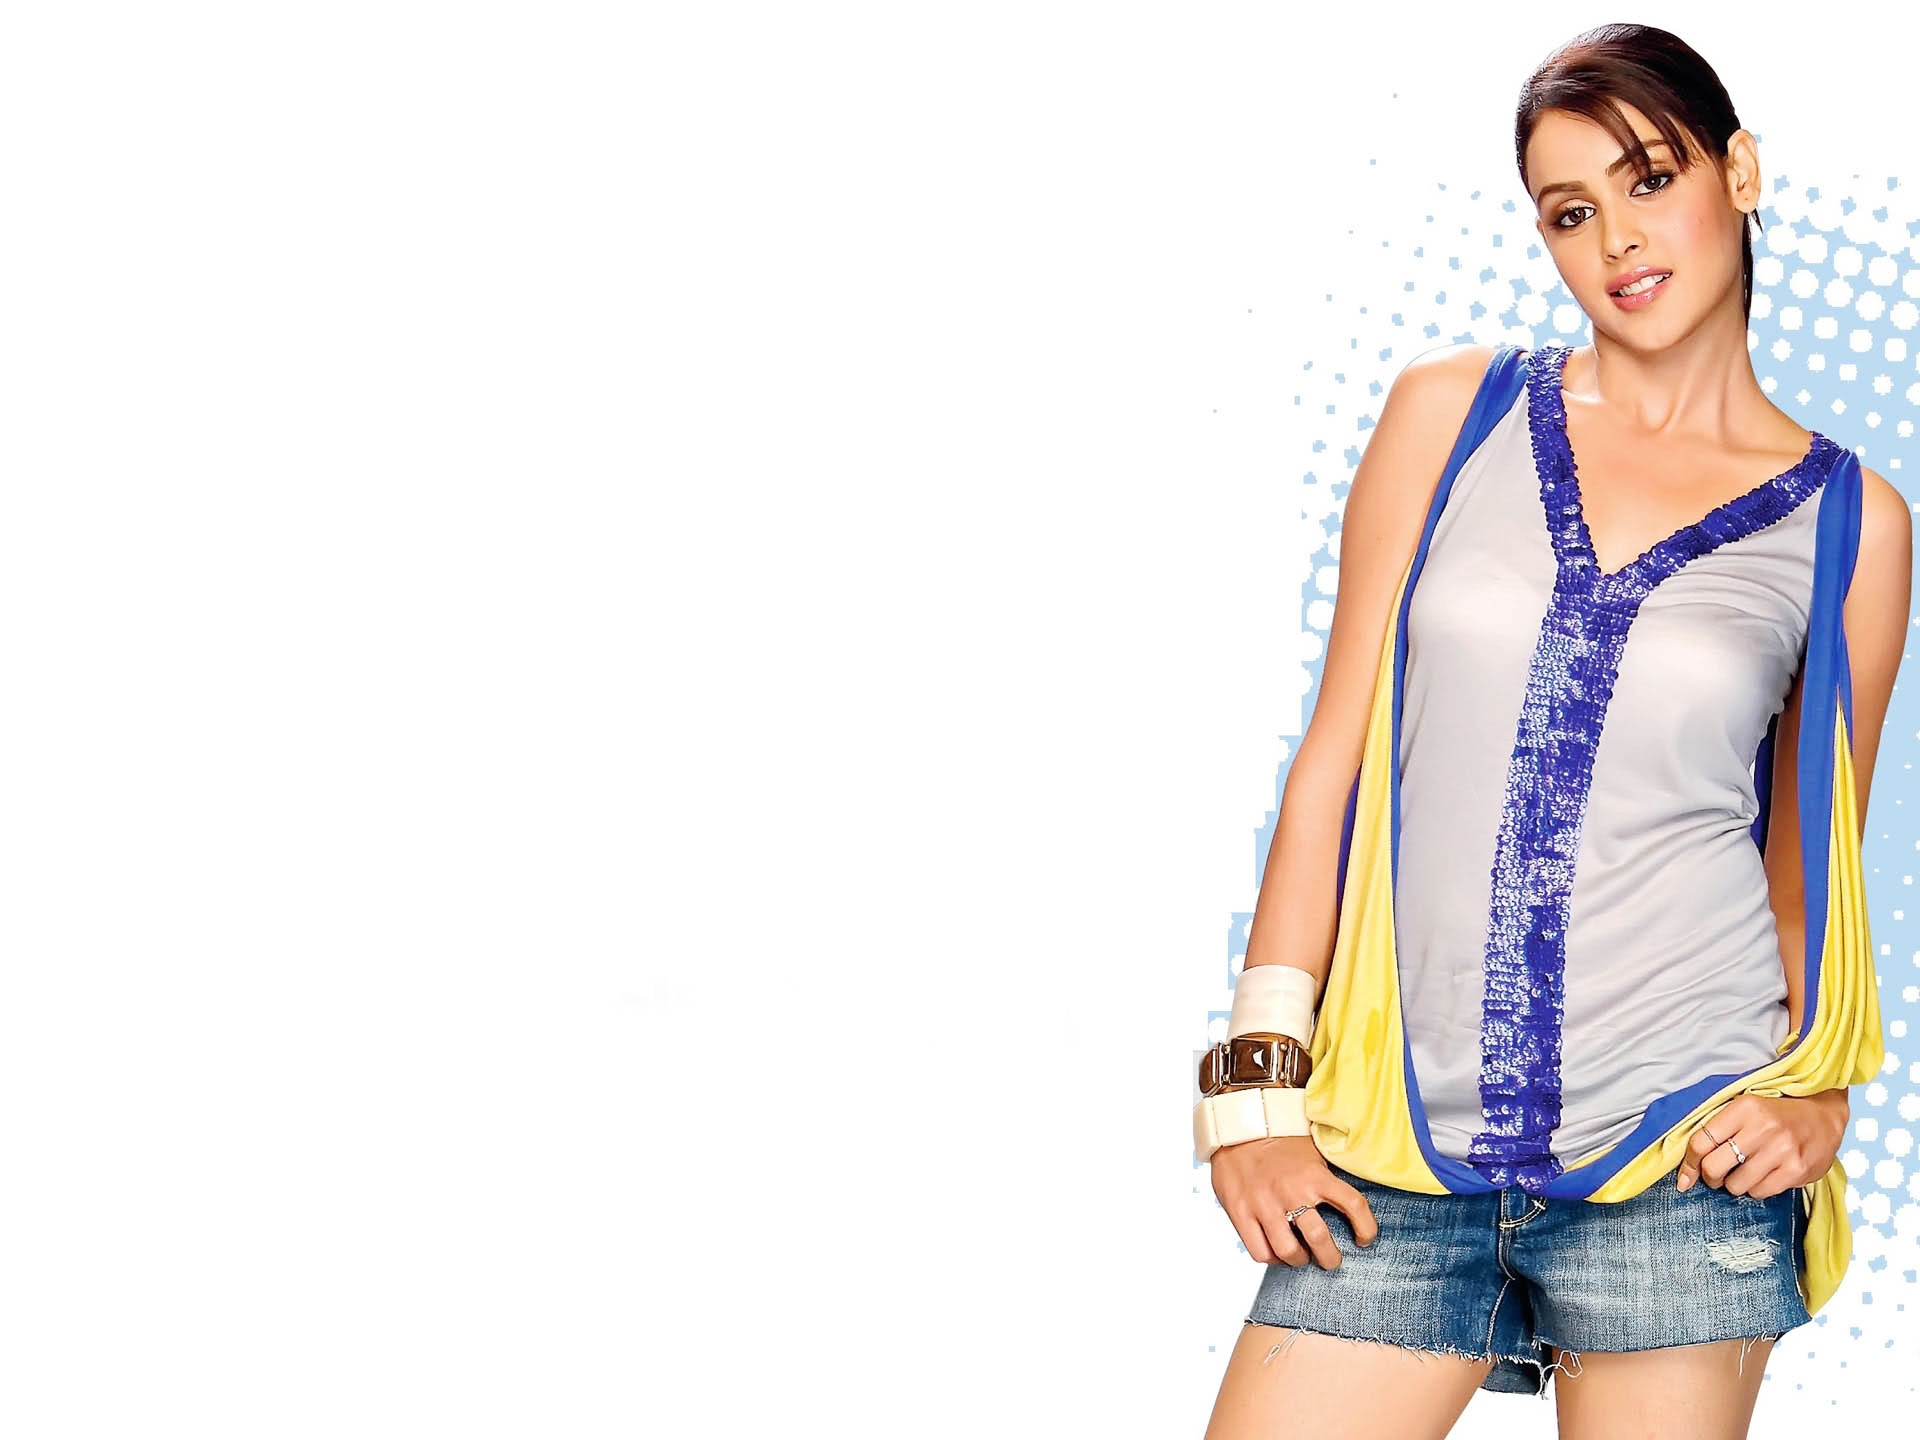 Genelia Latest 2011 207.26 Kb